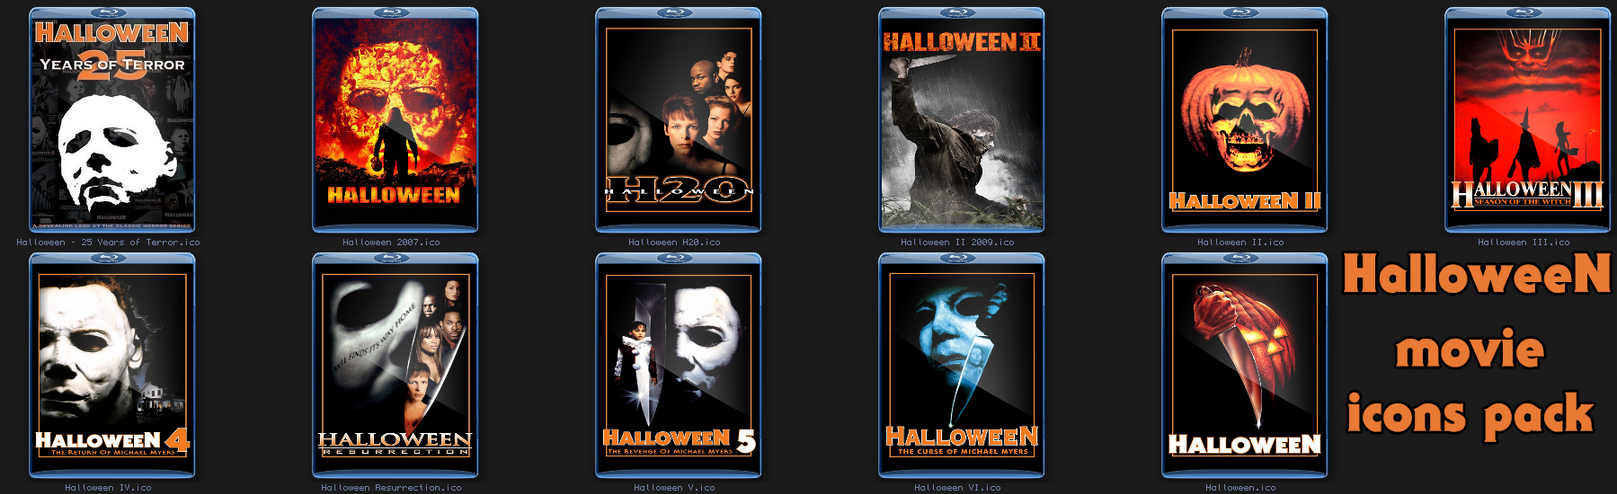 Halloween Movie Folder Icons by Rikvidr on DeviantArt